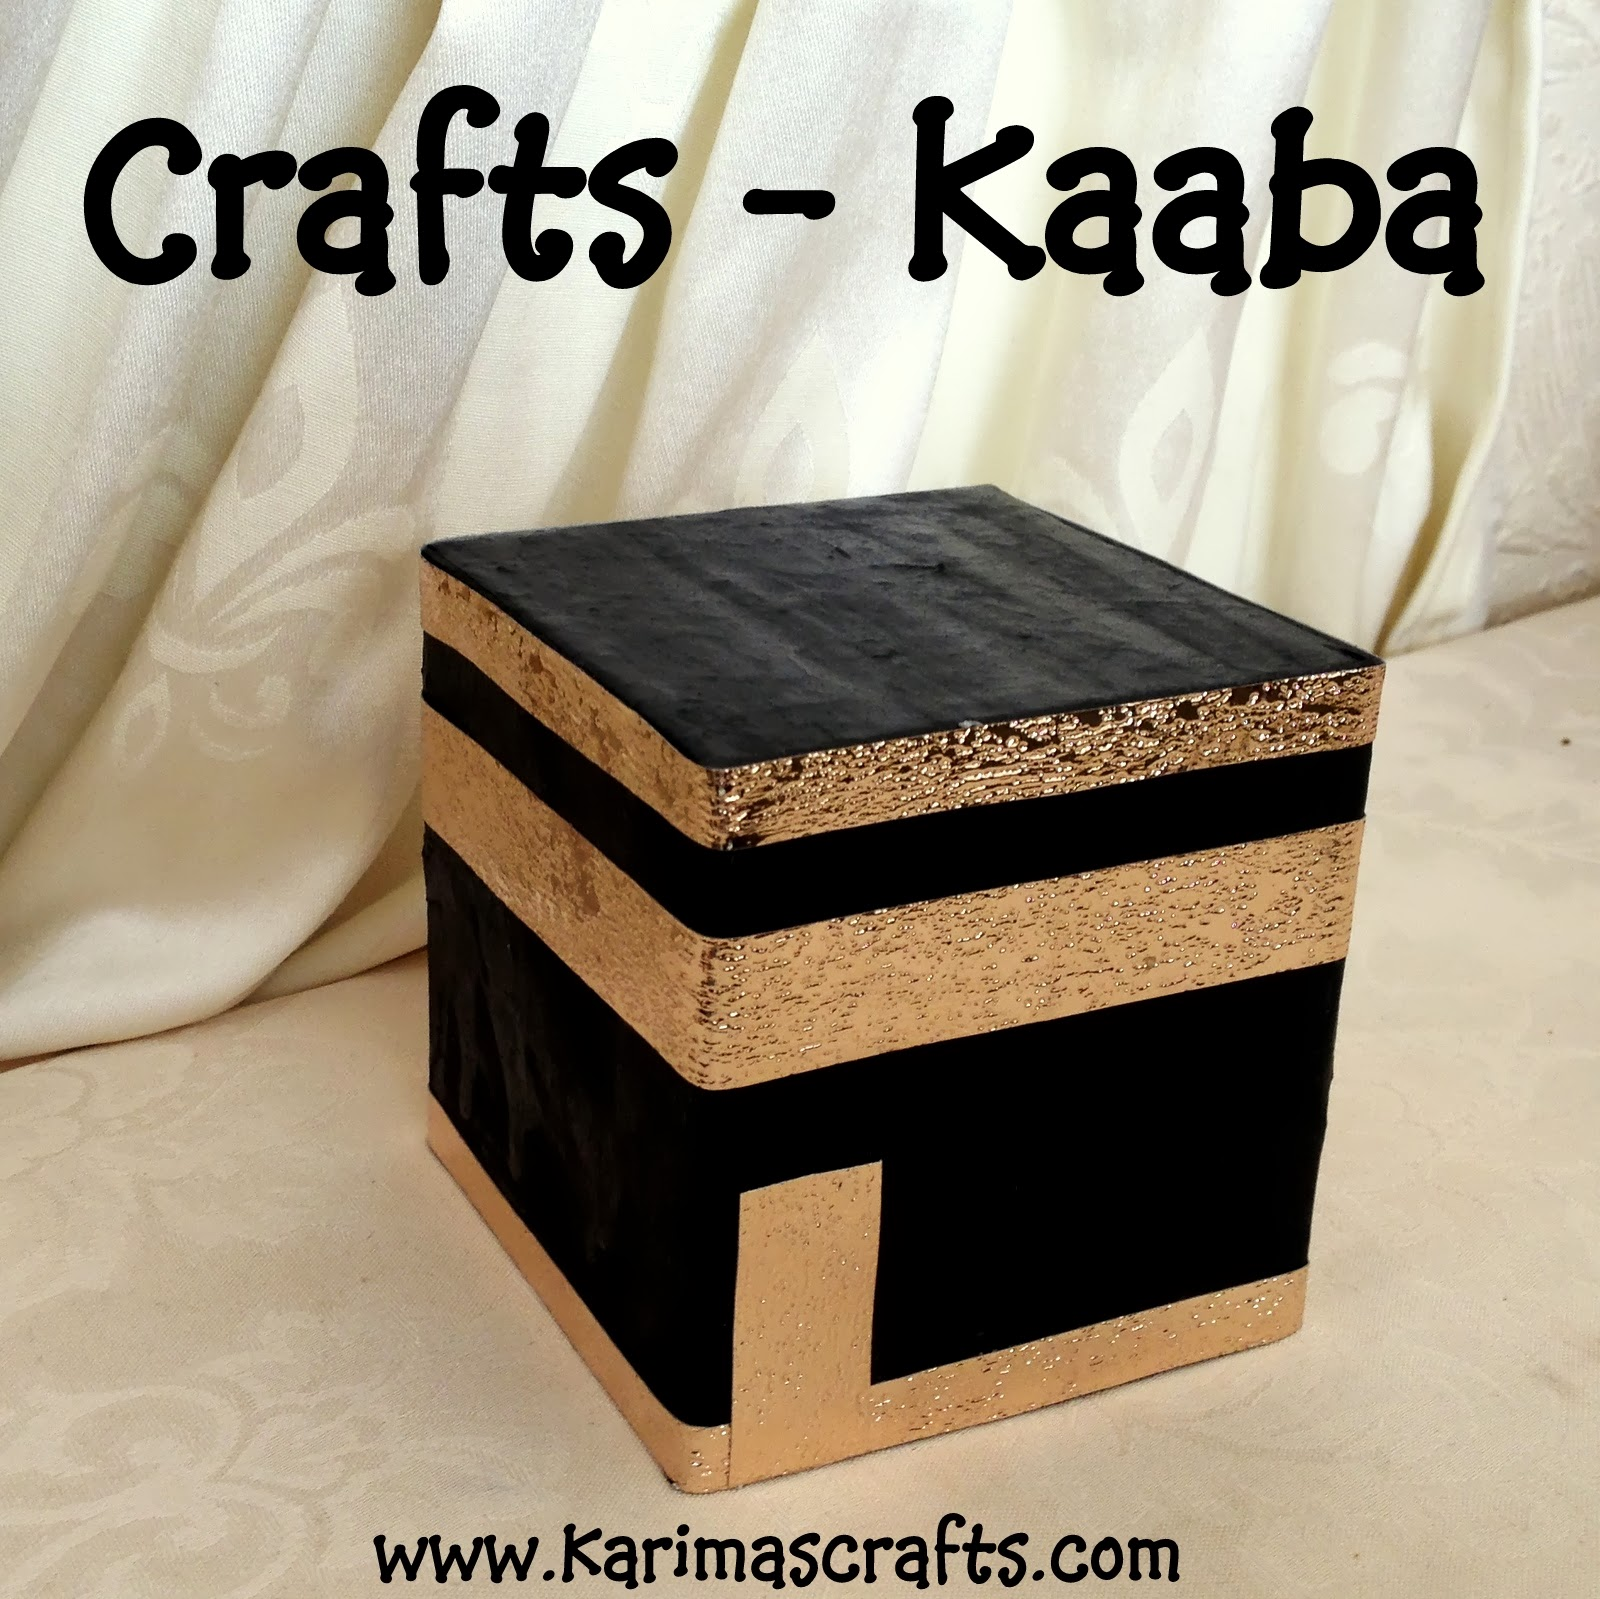 Karima 39 s crafts paper mache kaaba 30 days of ramadan crafts for Eid decorations to make at home